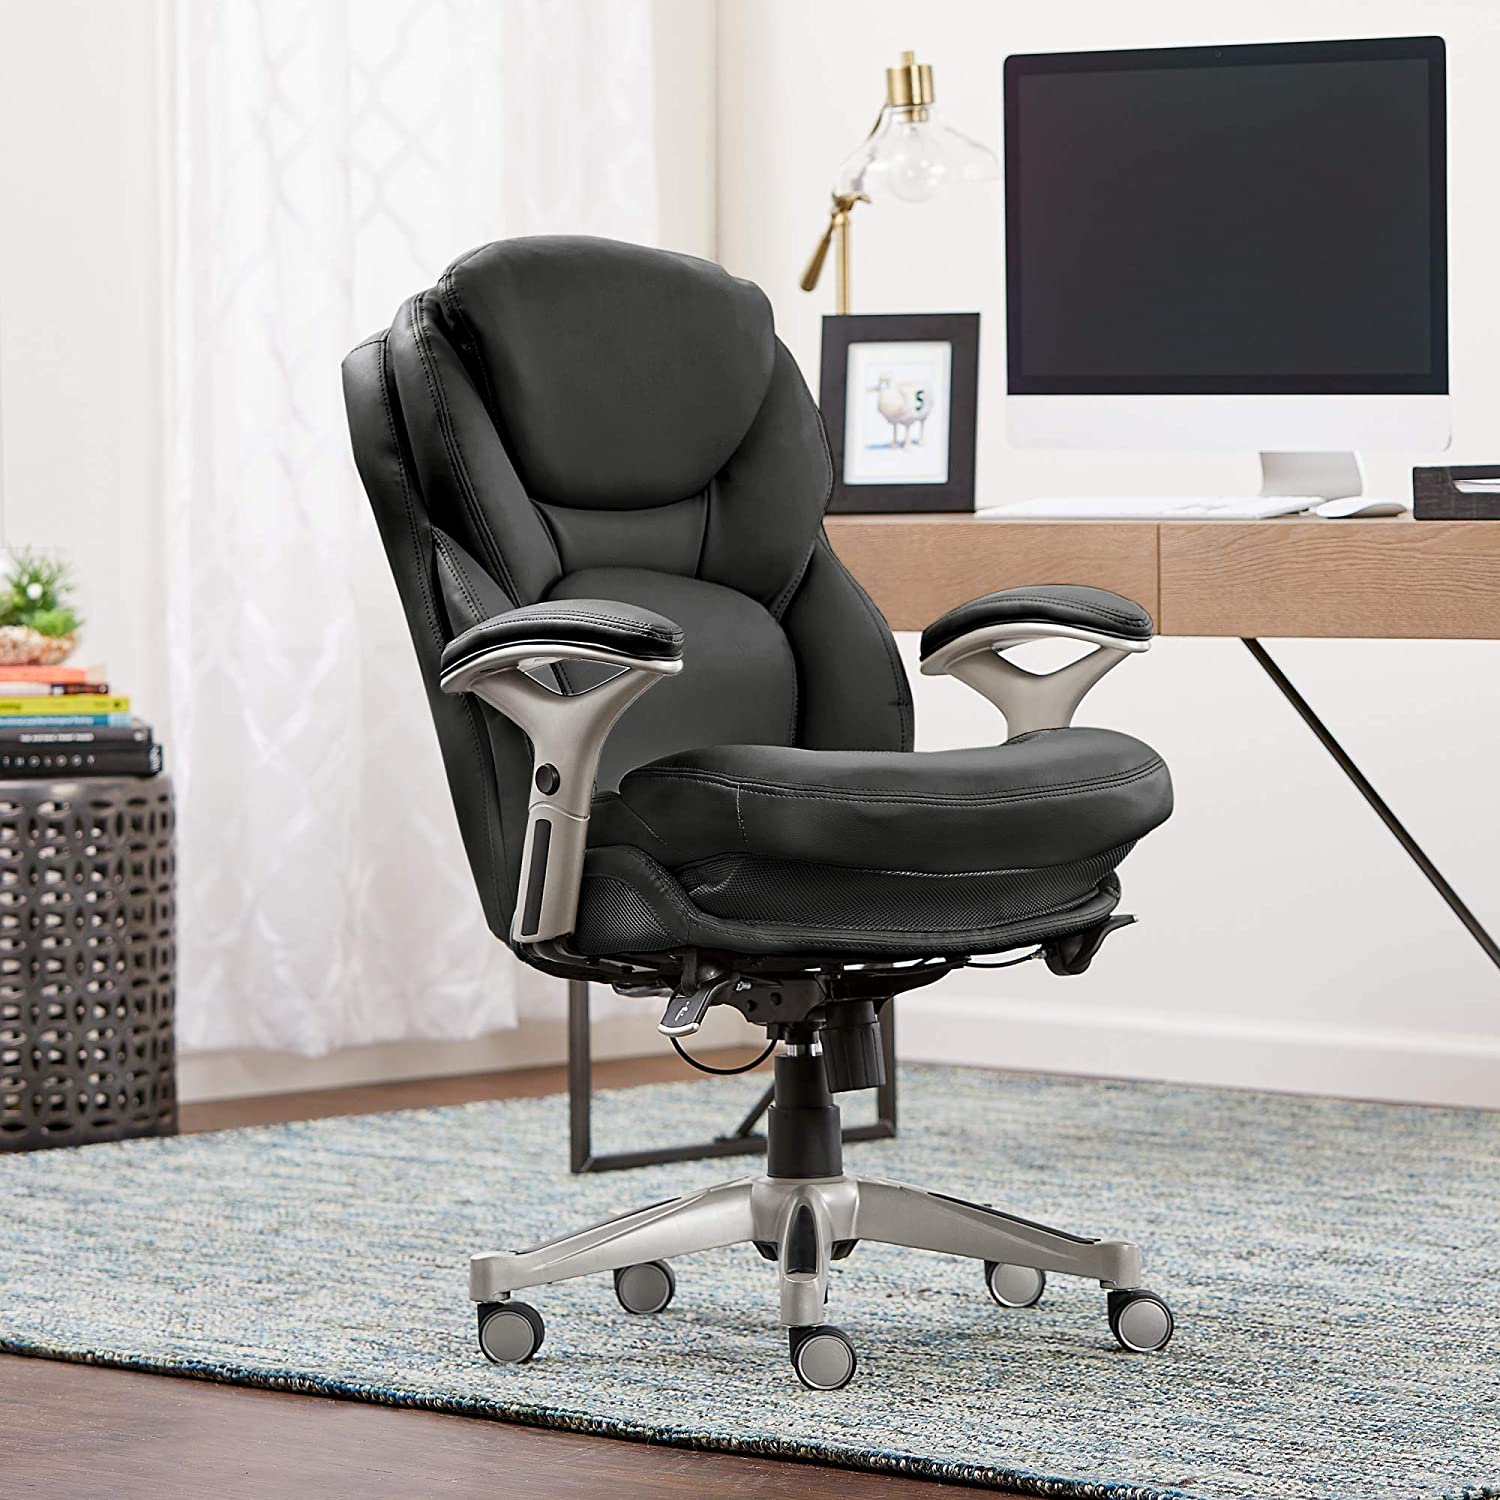 Serta Back in Motion Wellness Chair